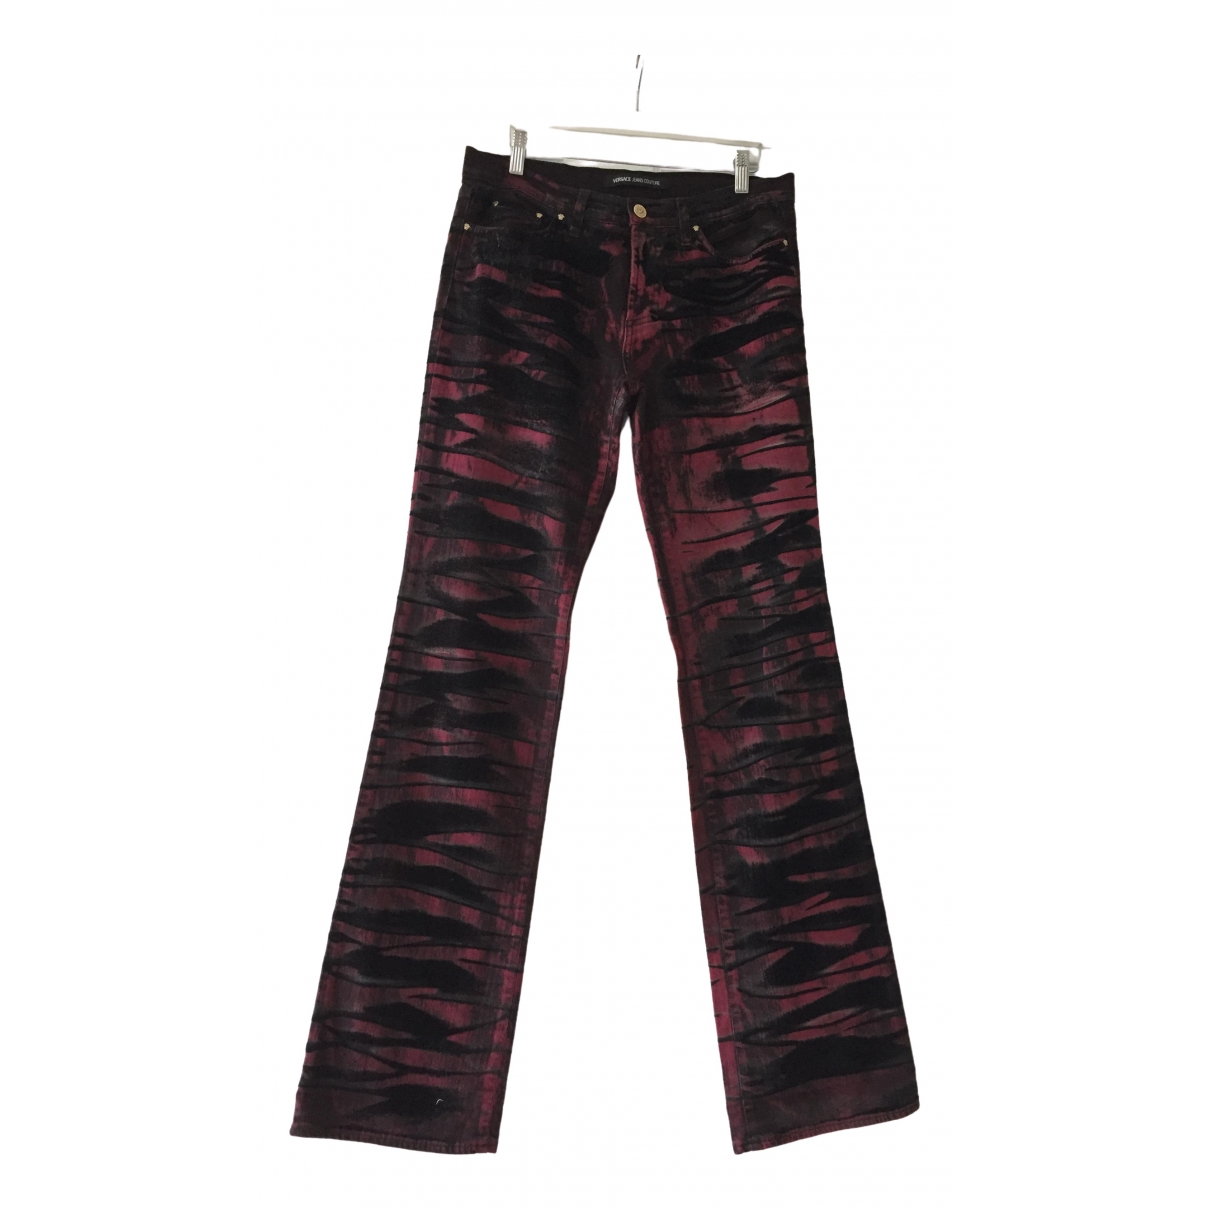 Versace Jeans \N Burgundy Denim - Jeans Trousers for Women 40 IT